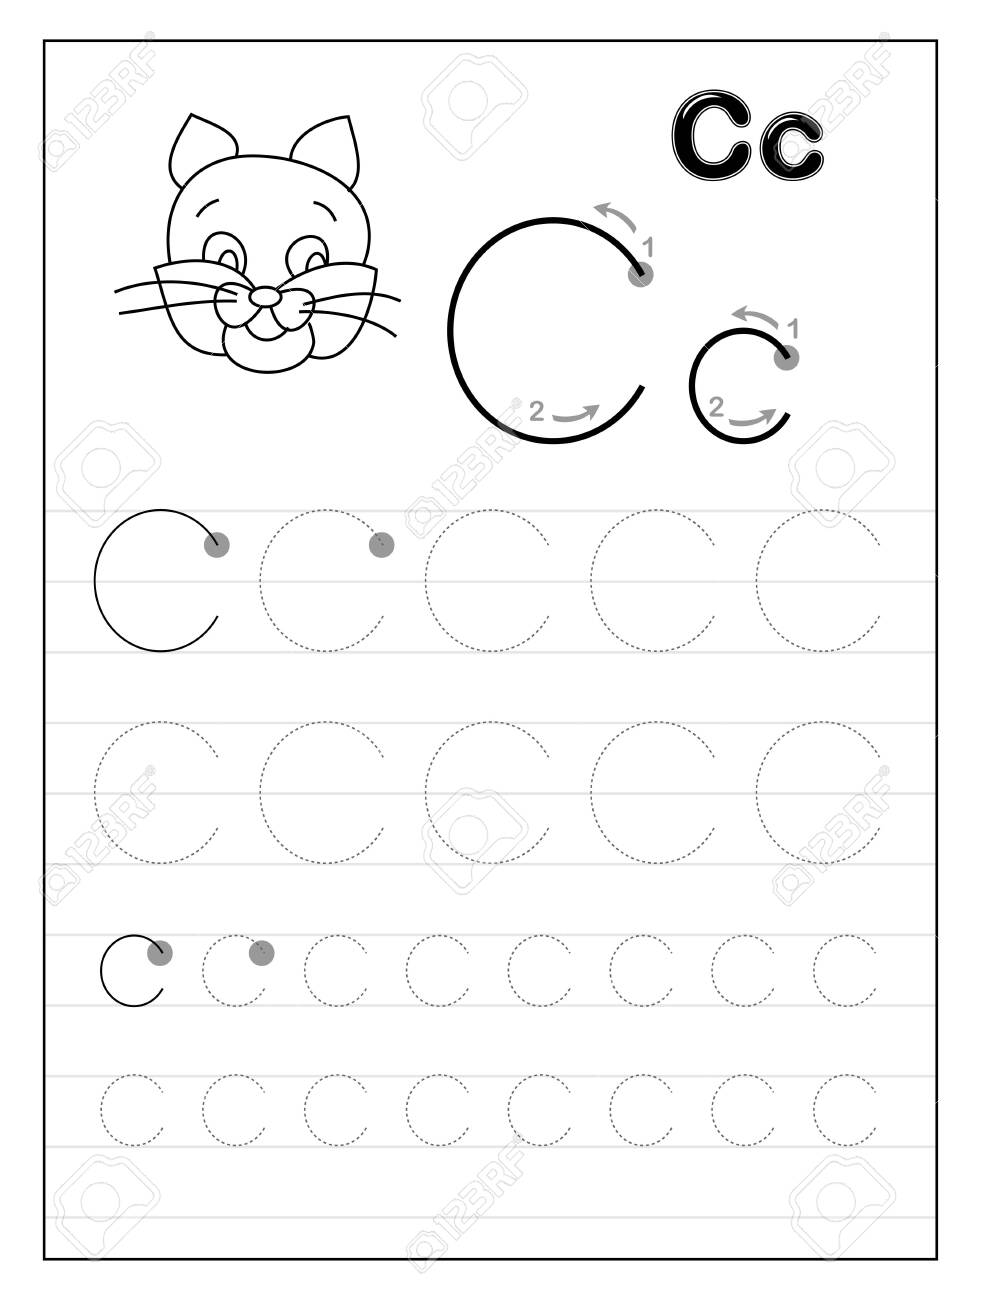 Tracing Alphabet Letter C Black And White Educational Pages Royalty Free Cliparts Vectors And Stock Illustration Image 130549143